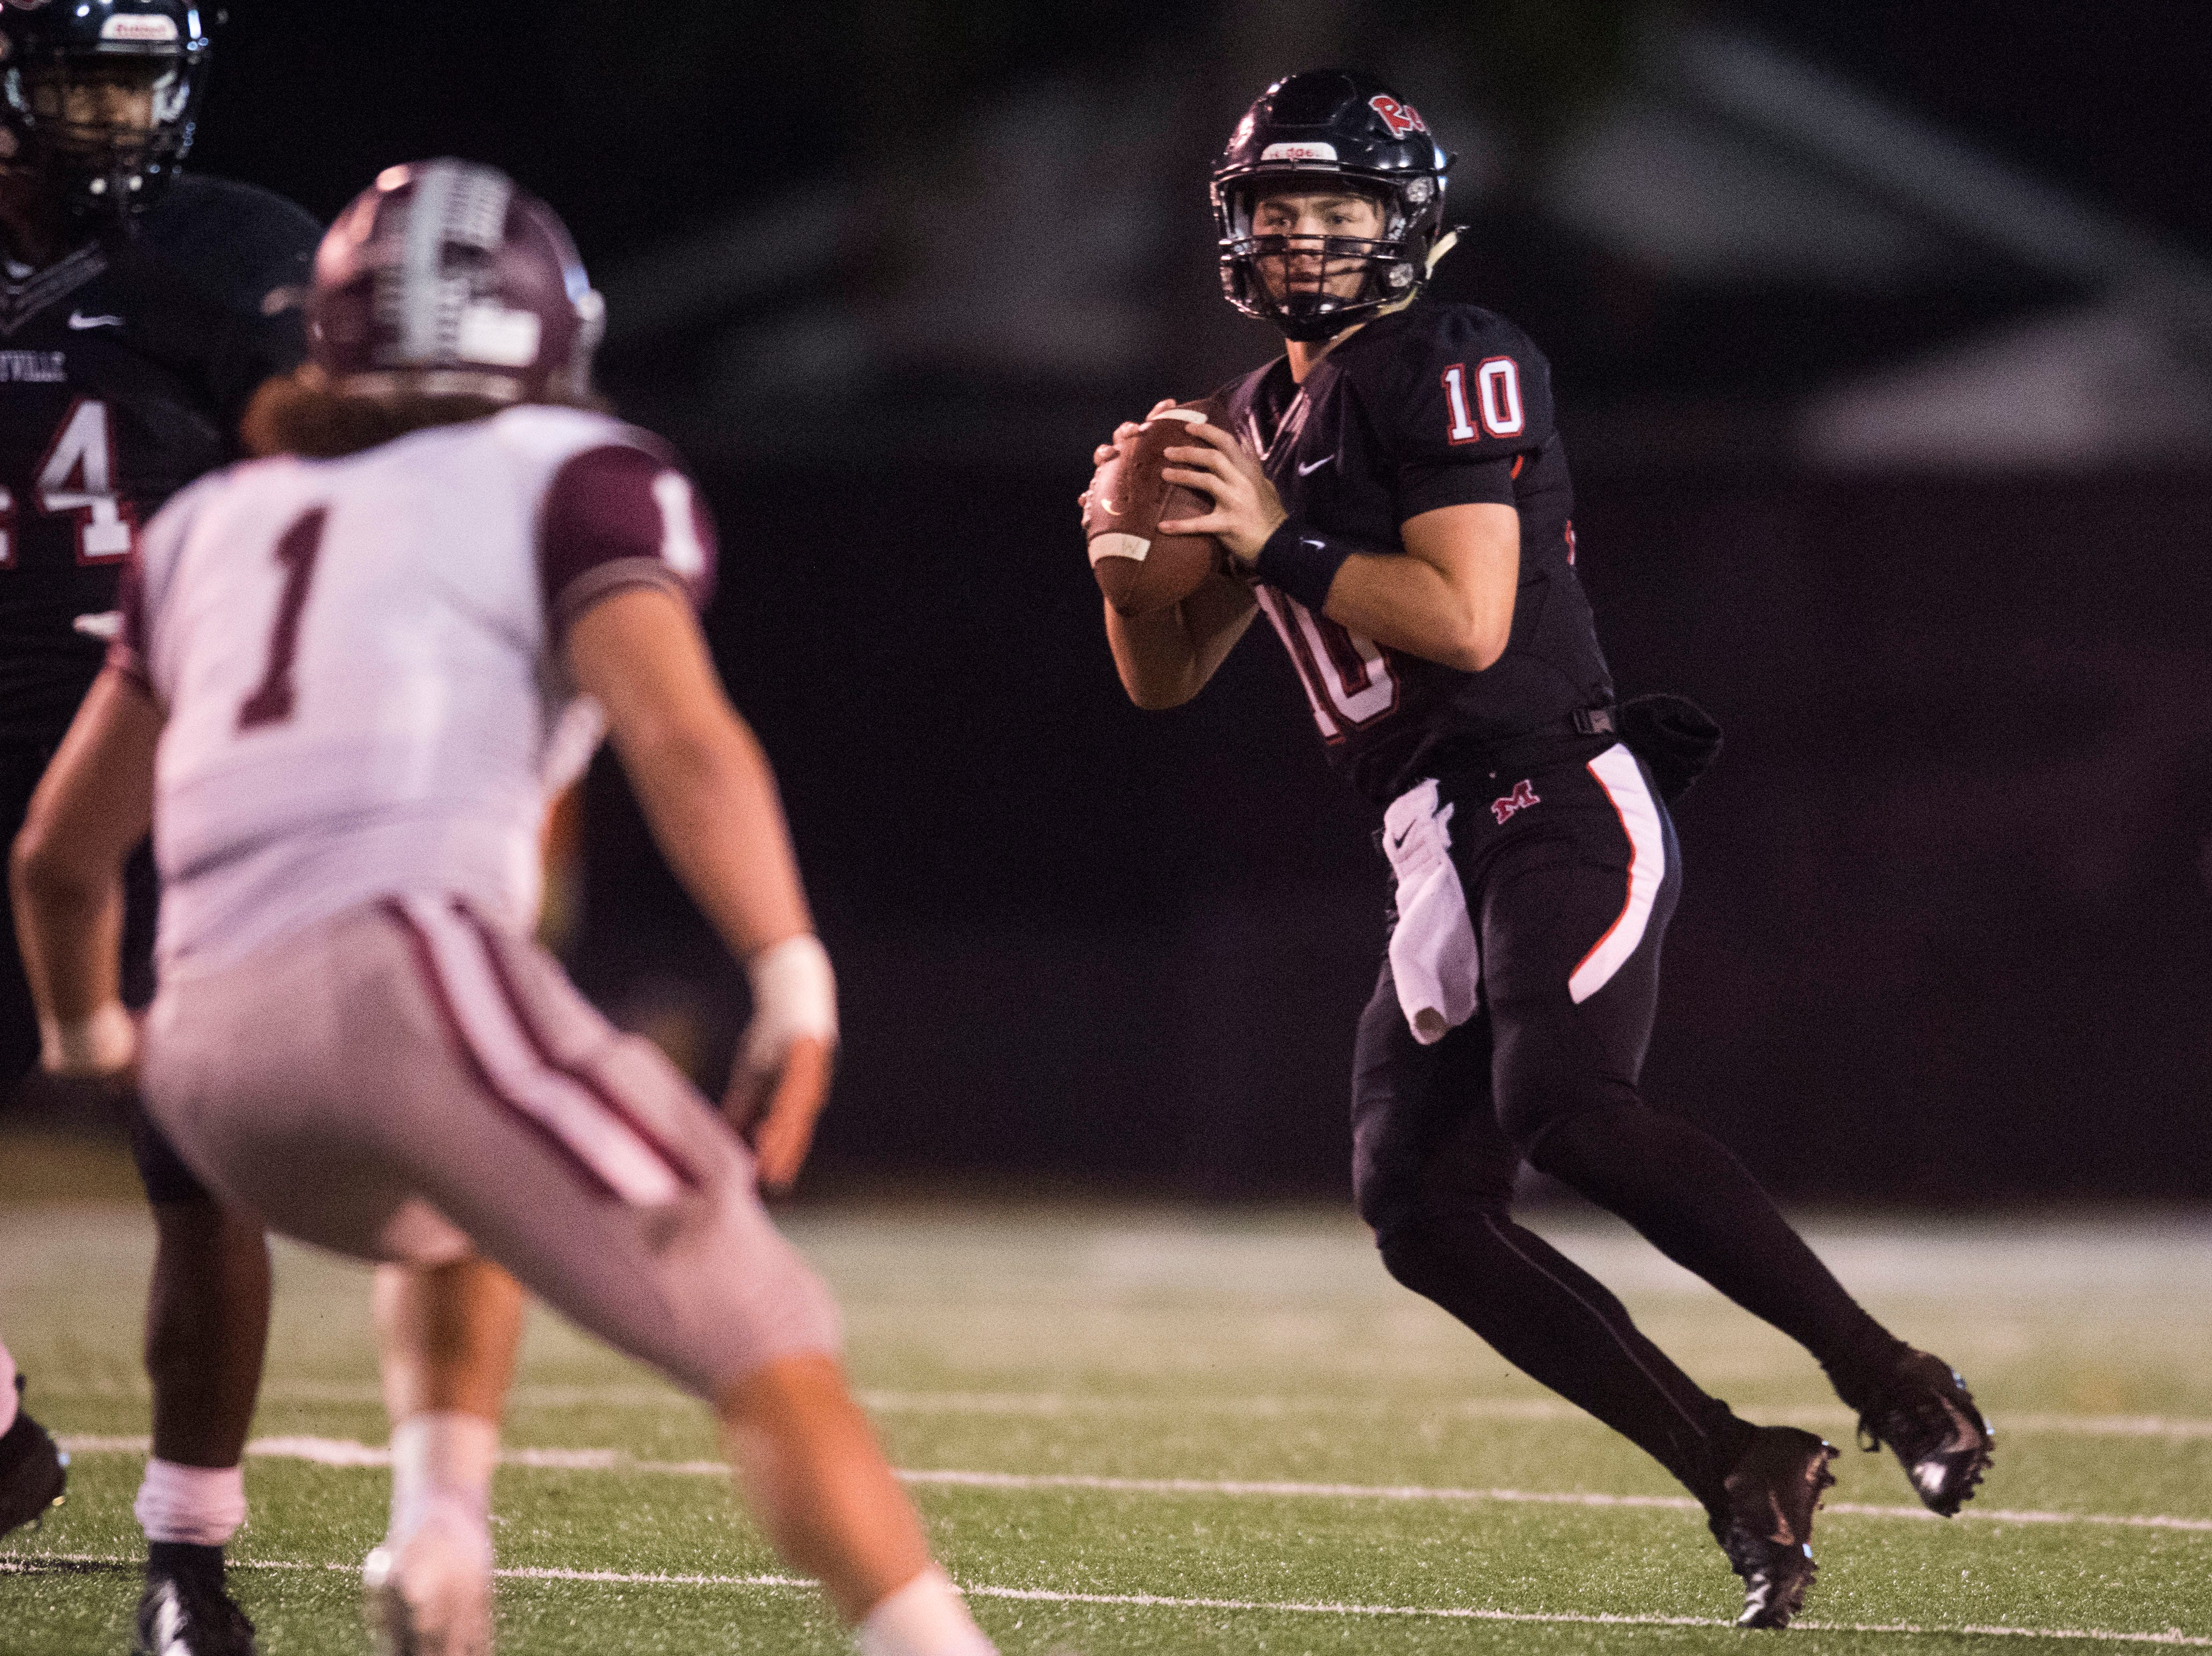 Maryville's Braden Carnes (10) prepares to pass the ball during a first round playoff game between Maryville and Bearden at Maryville, Friday, Nov. 2, 2018. Maryville defeated Bearden 28-7.